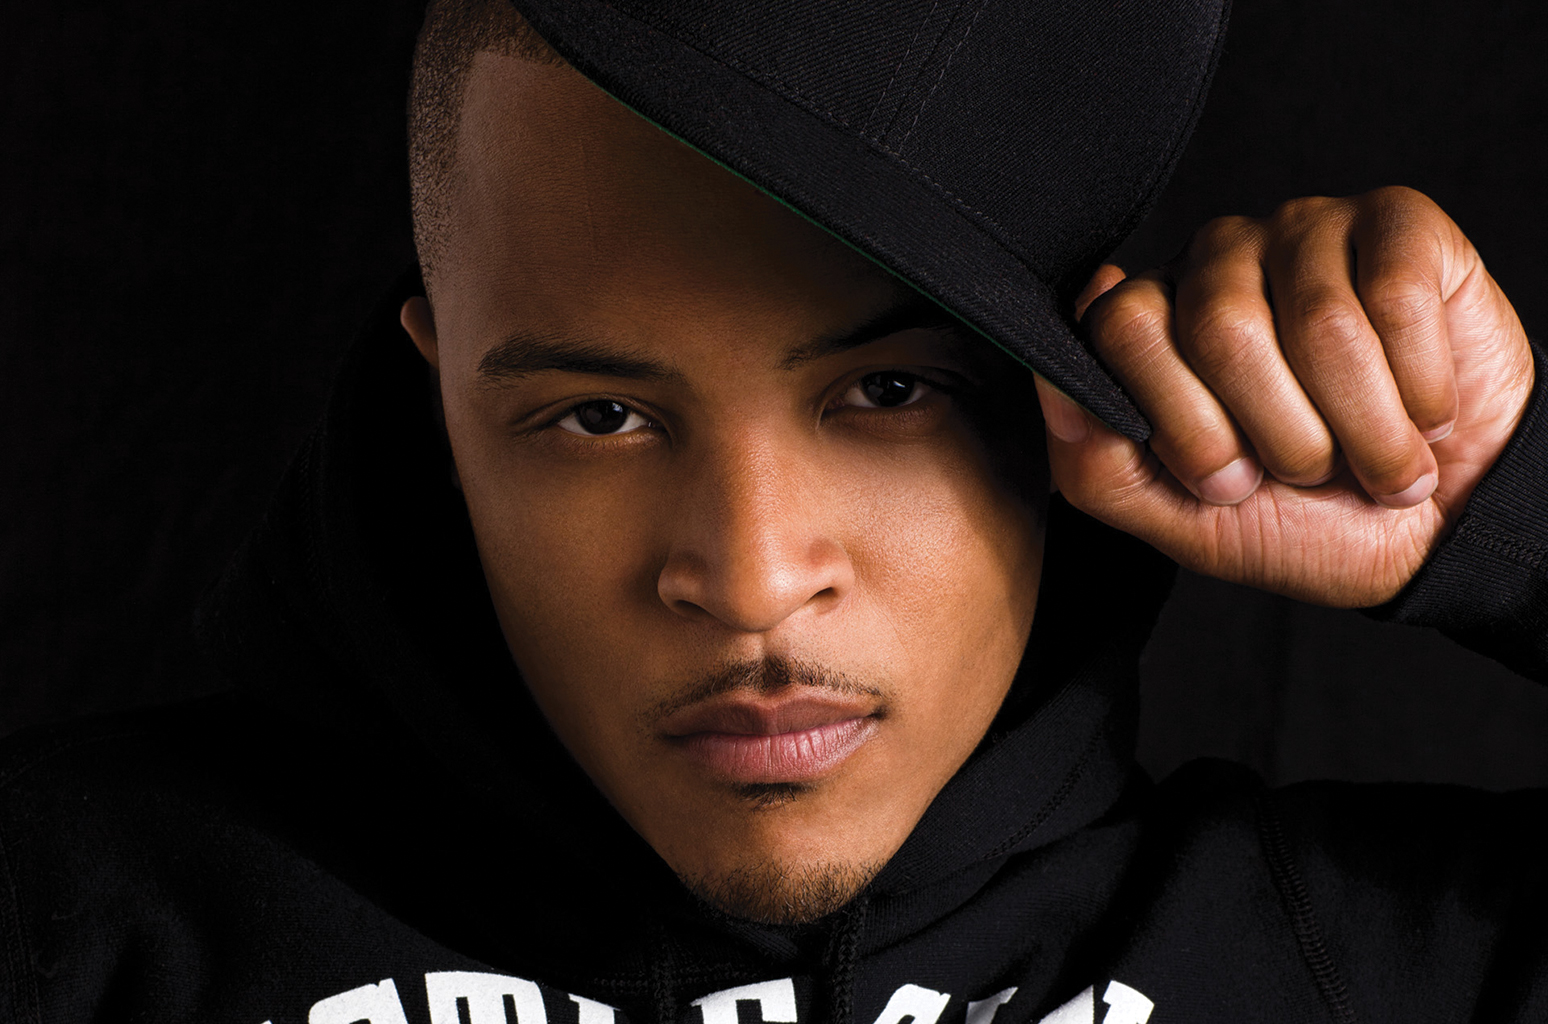 T.I.'s Short Movie 'You/Be There' Is Out Now - Fans Cannot Be More Excited